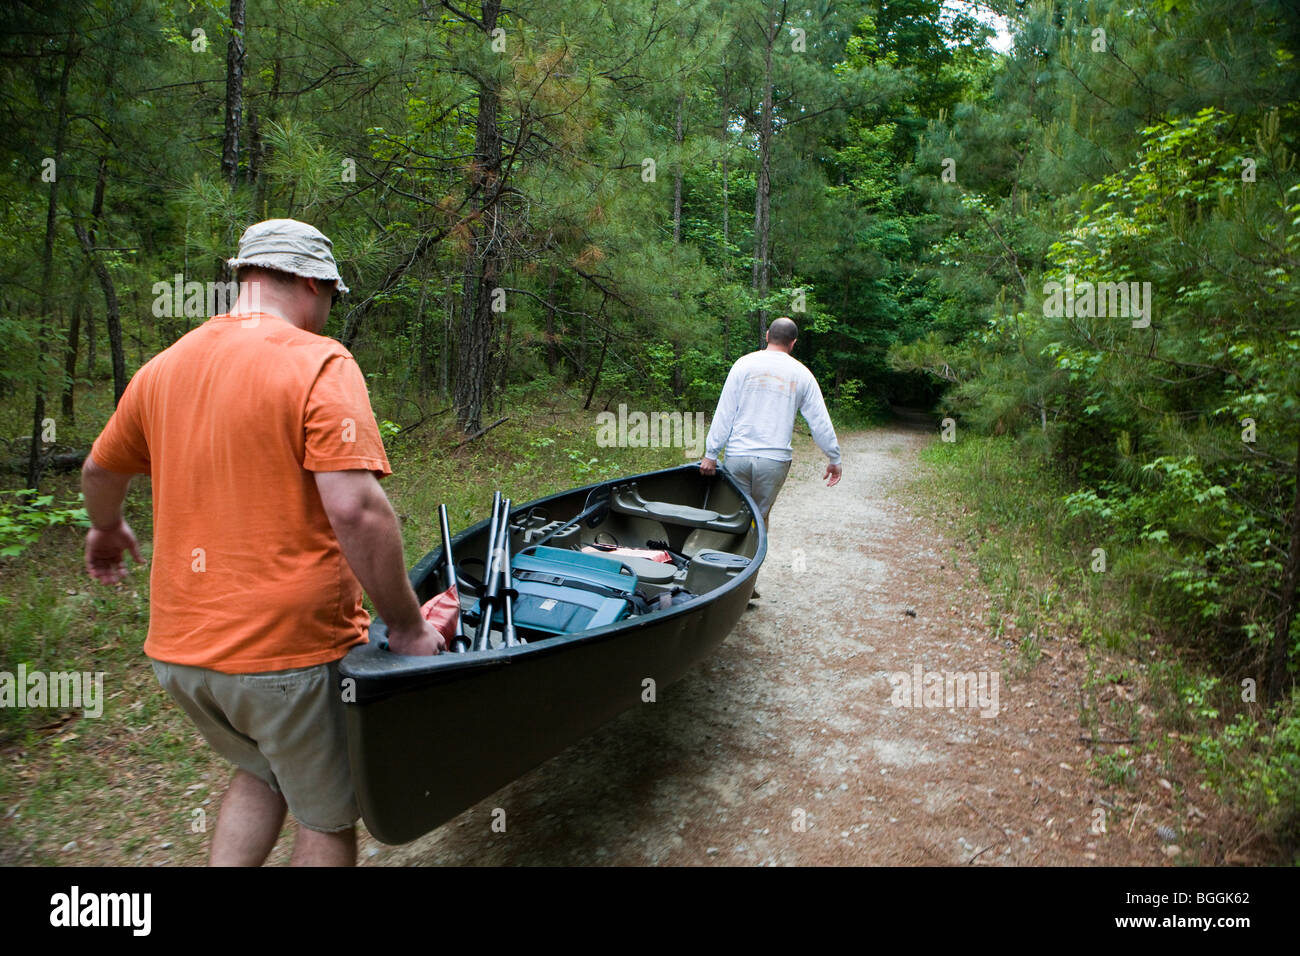 Two men portaging a canoe down a trail, Congaree National Park, near Columbia, South Carolina. - Stock Image